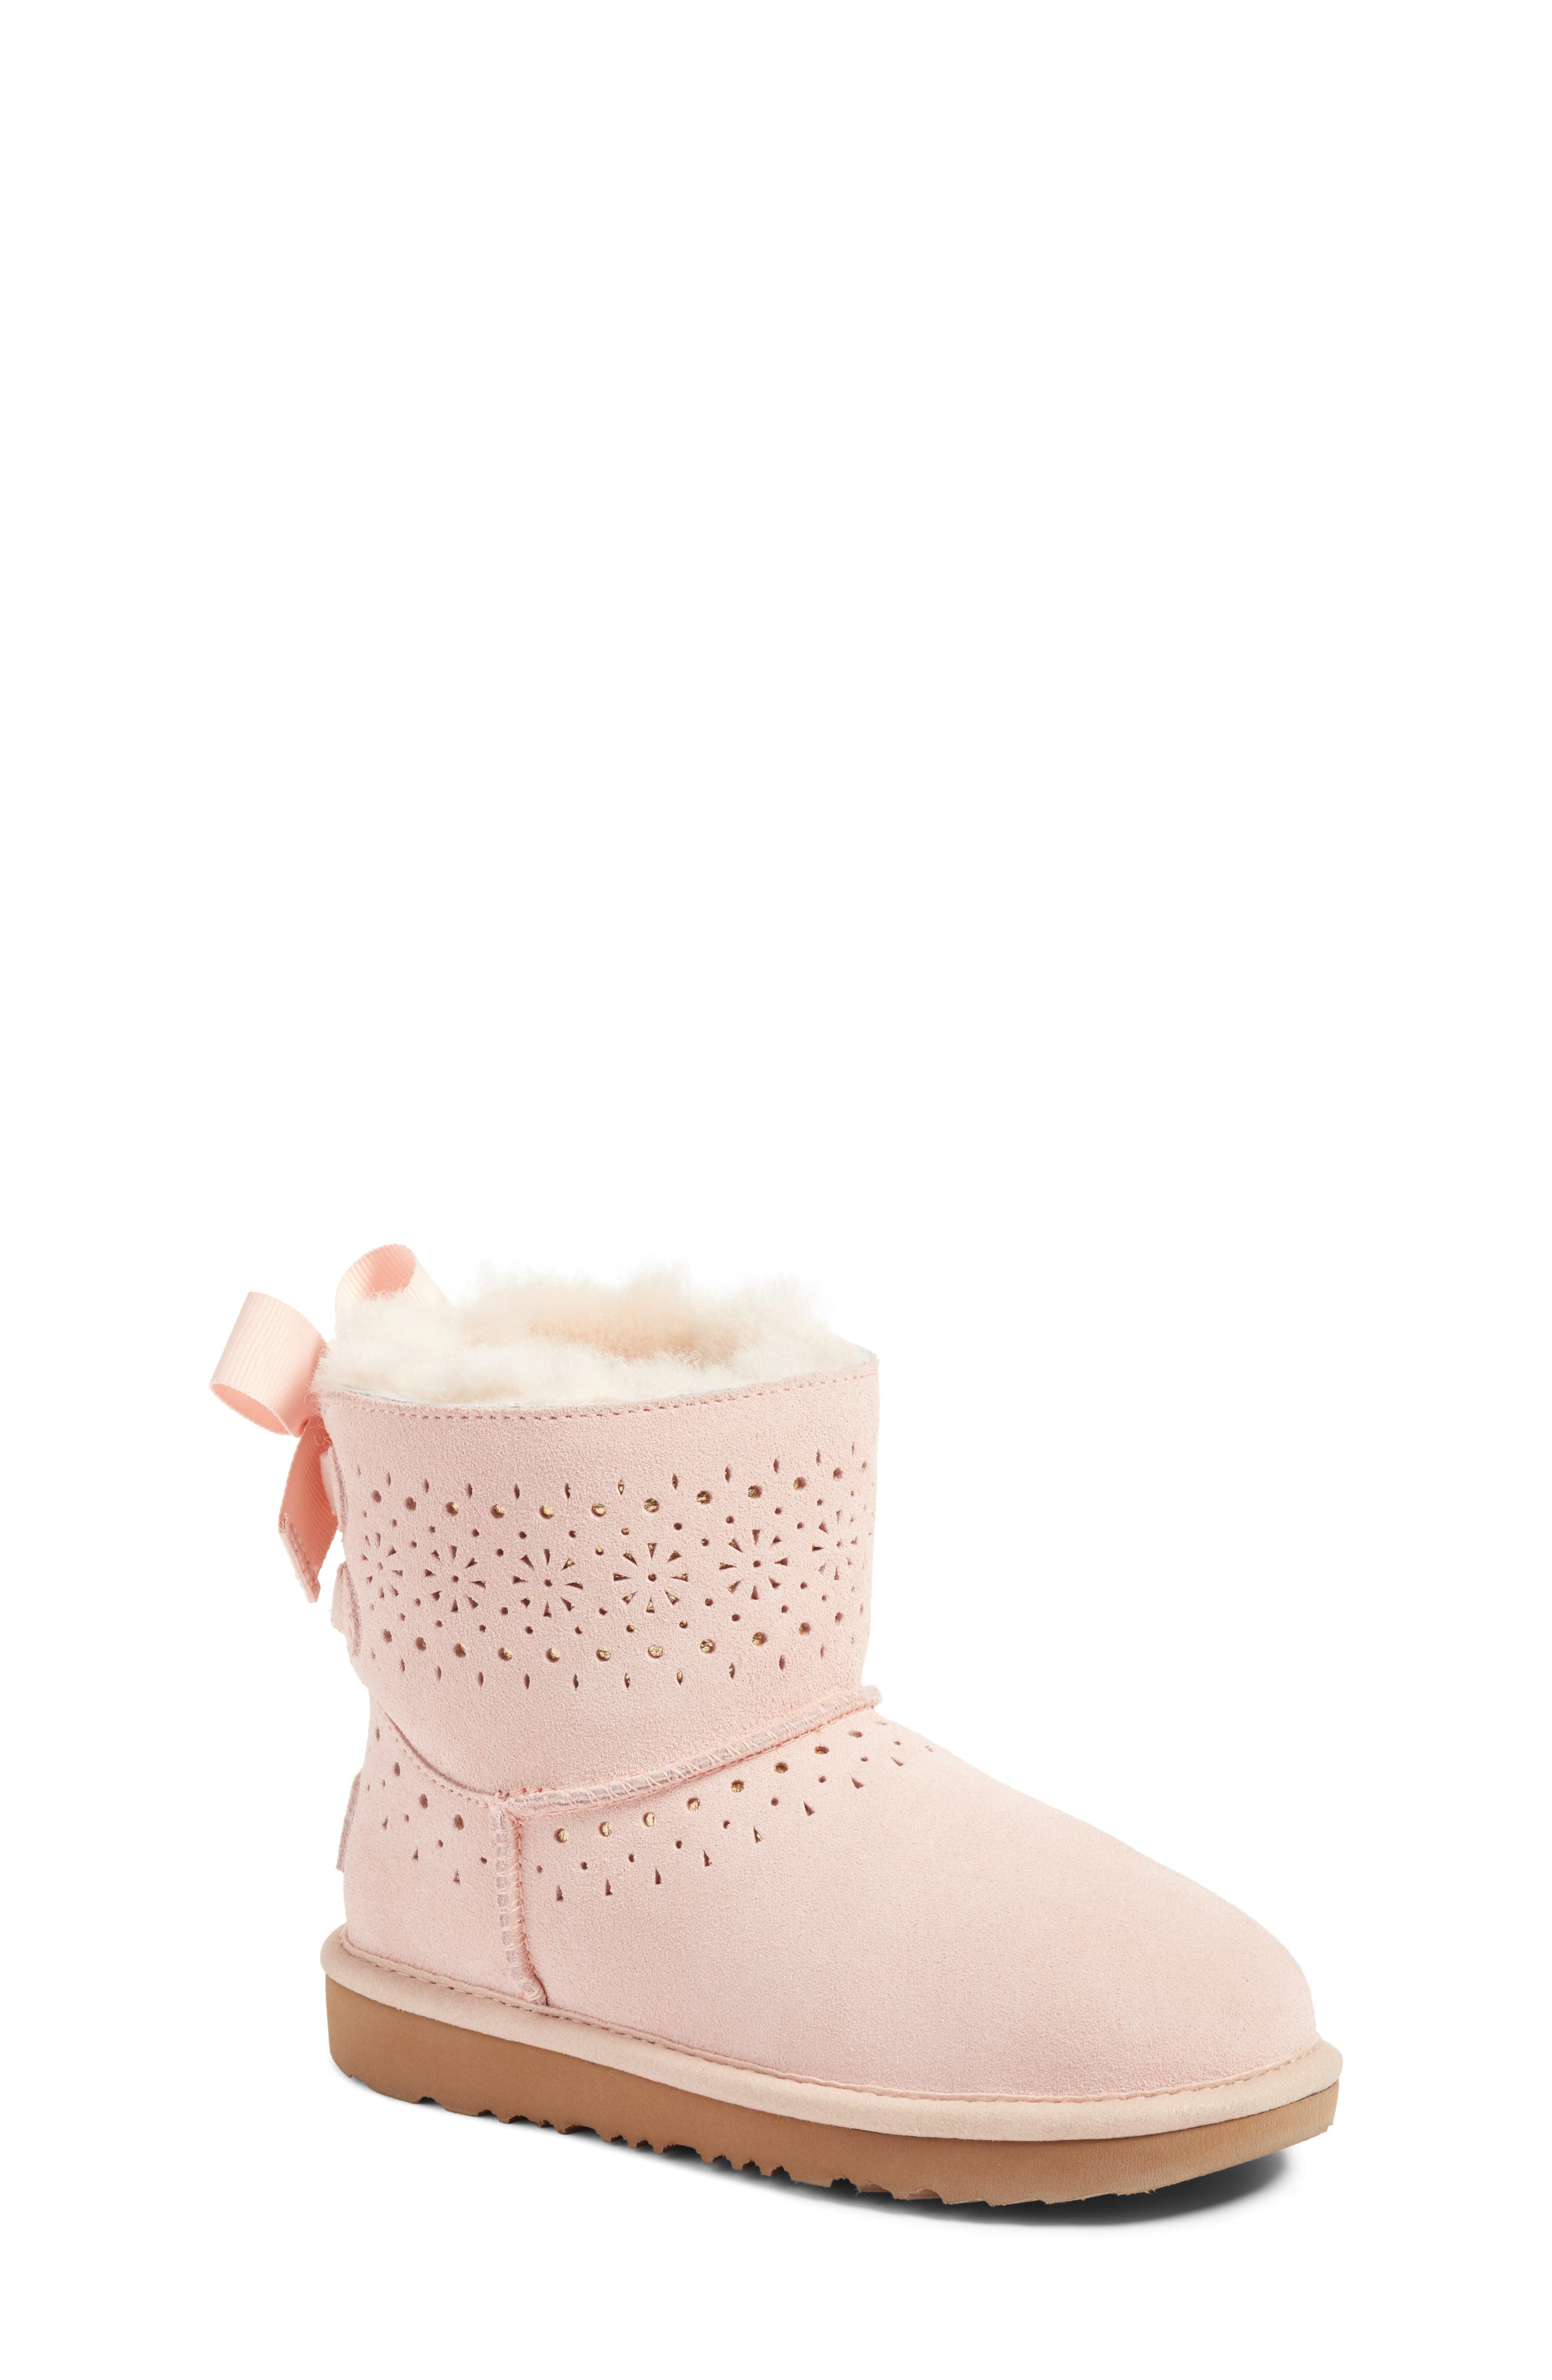 Dae Perforated Tie Back Boot,                             Main thumbnail 1, color,                             Baby Pink